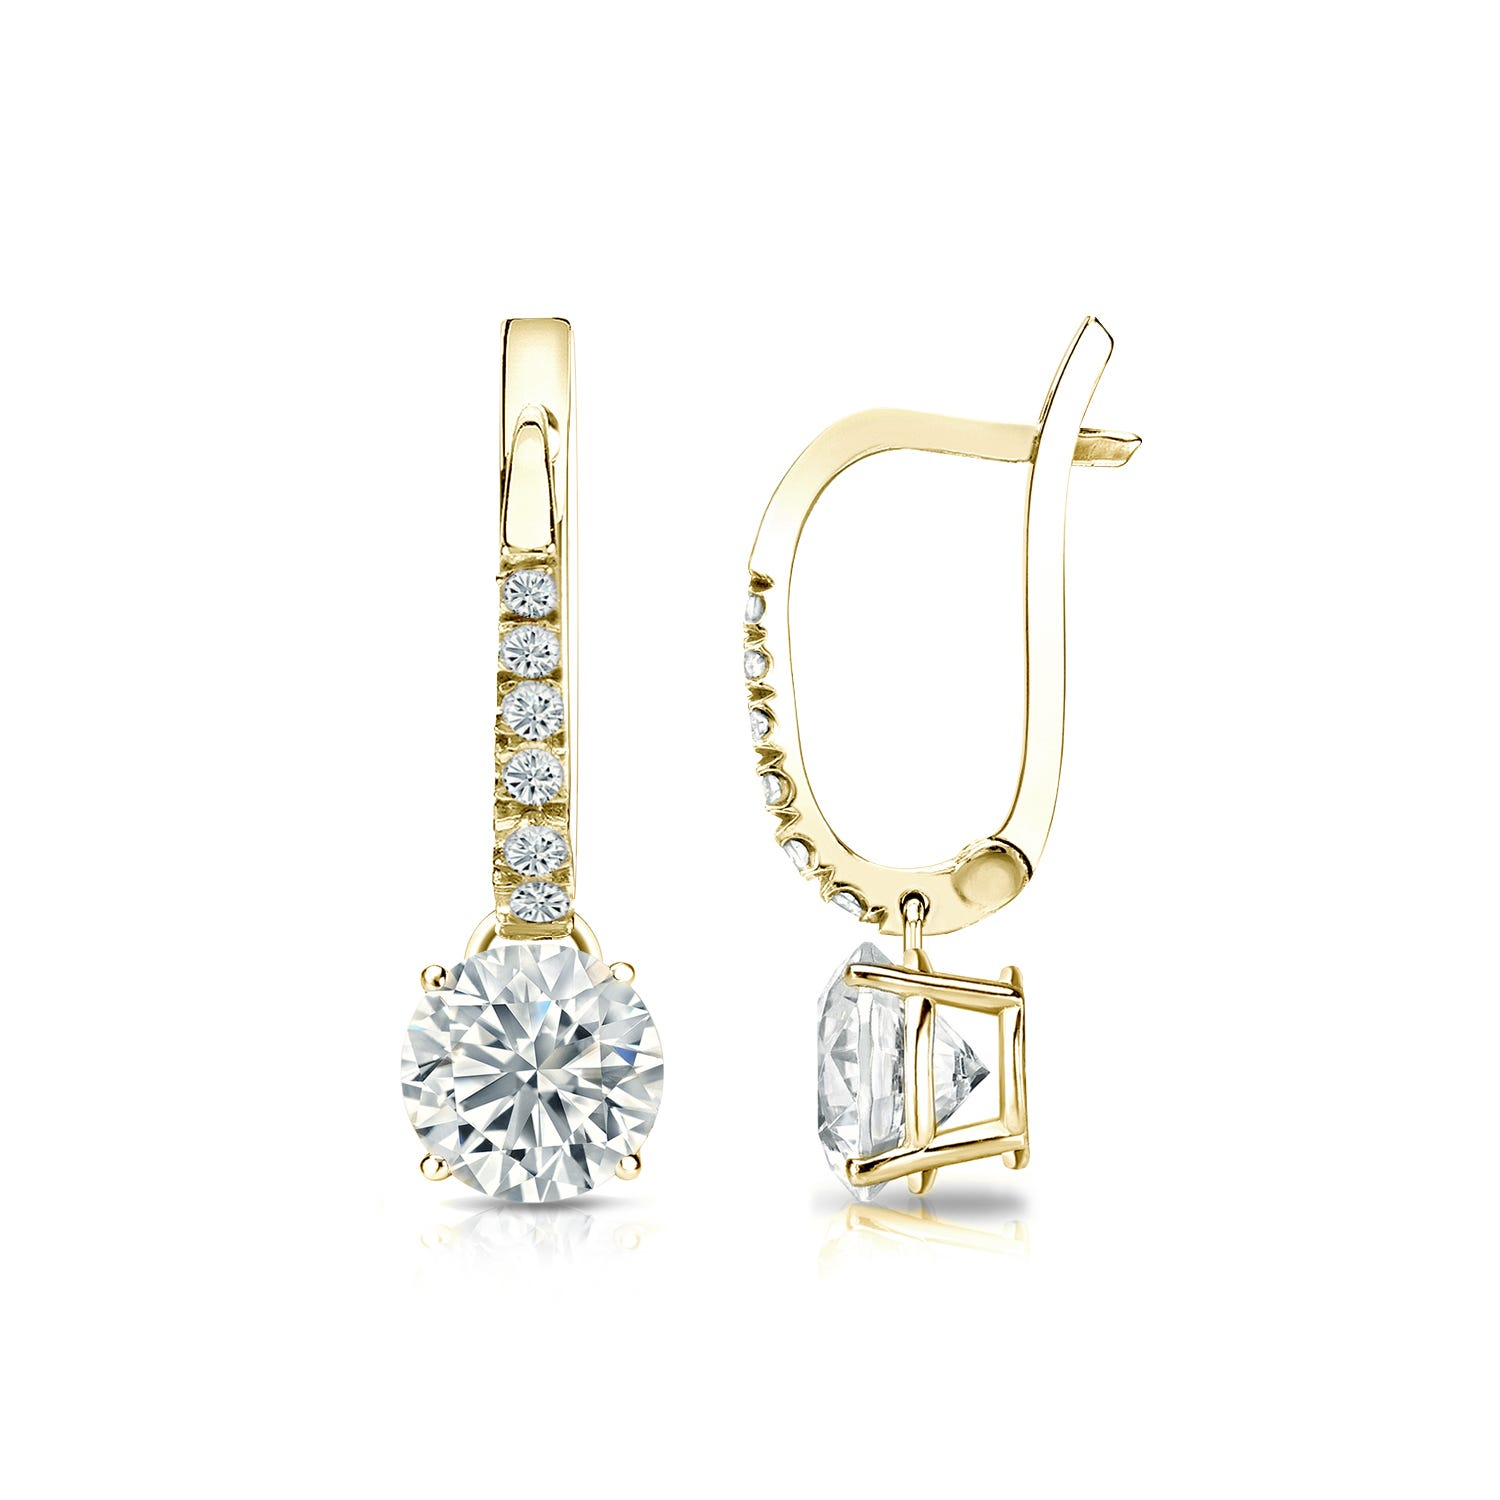 Diamond 1ctw. 4-Prong Round Drop Earrings in 14k Yellow Gold VS2 Clarity